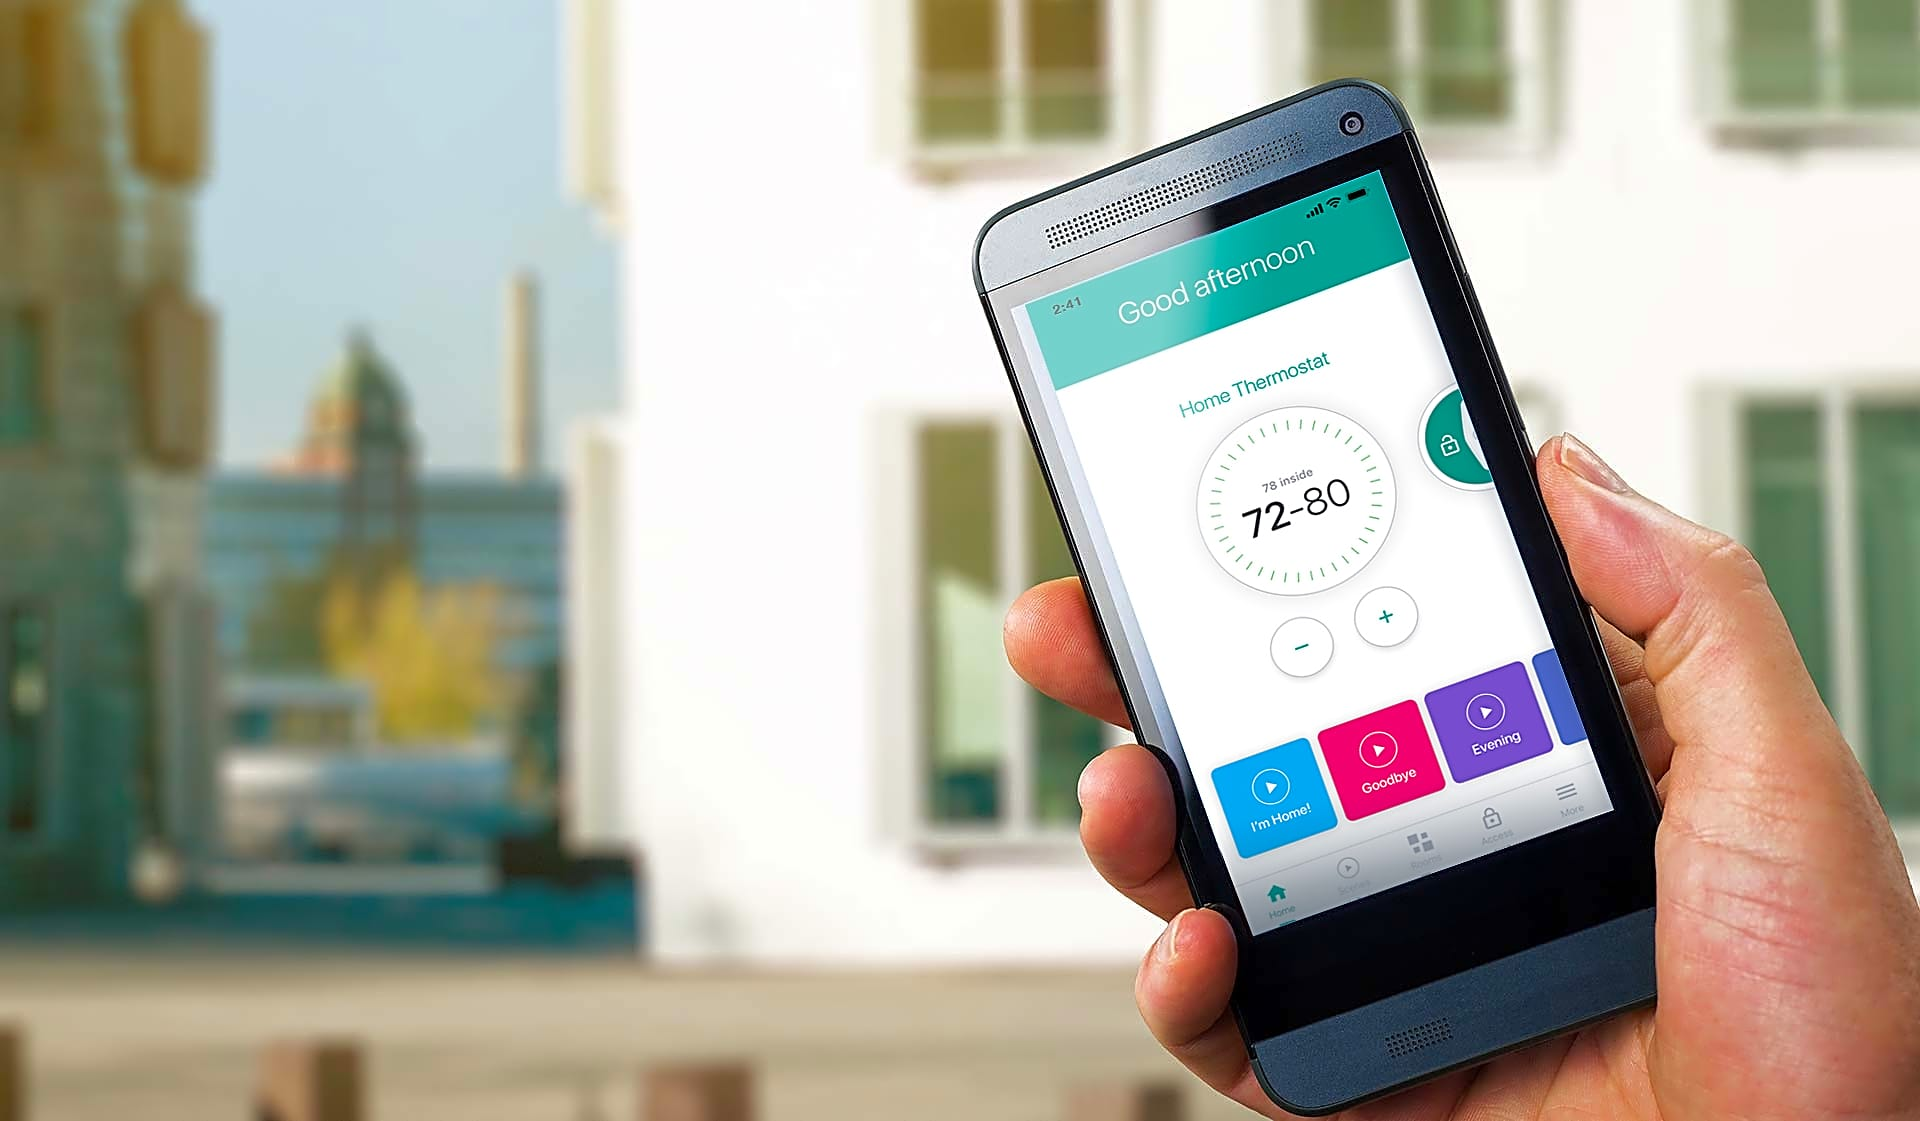 Control the temperature without getting up and never fumble for your keys again. Smart home tech available in every home!